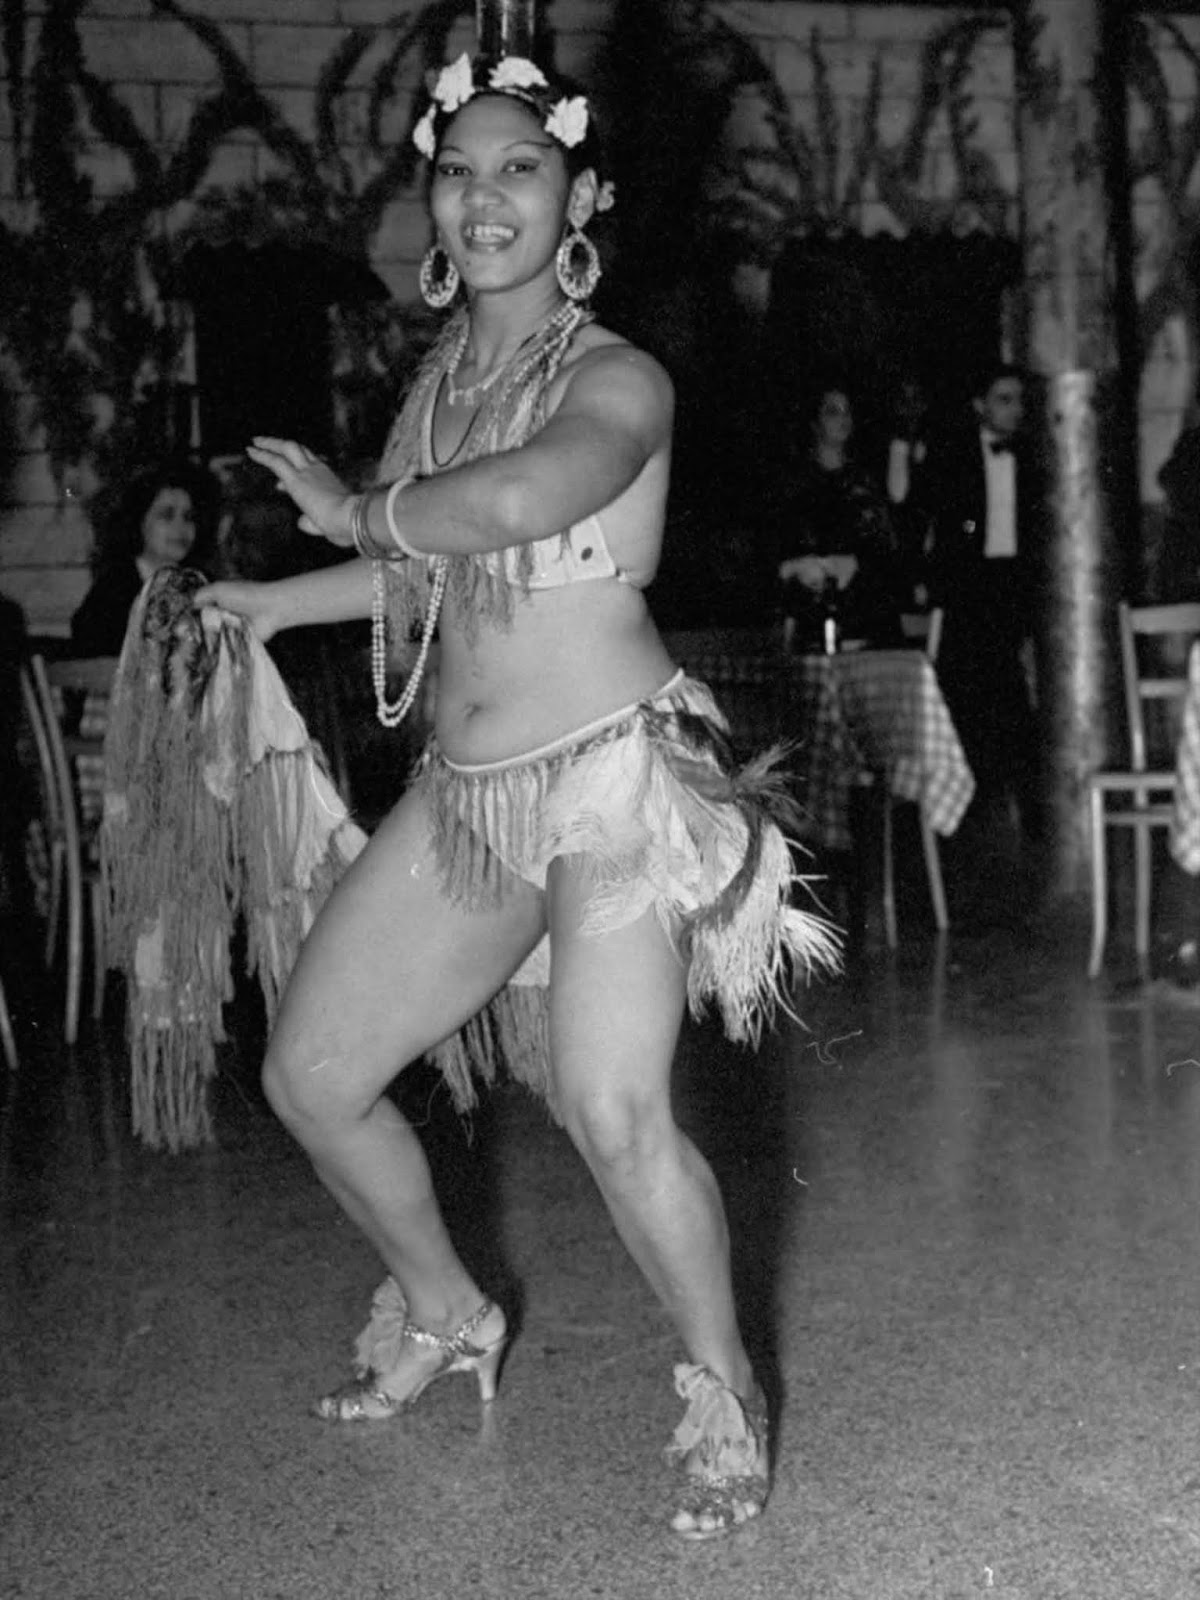 A dancer in Havana. 1937.